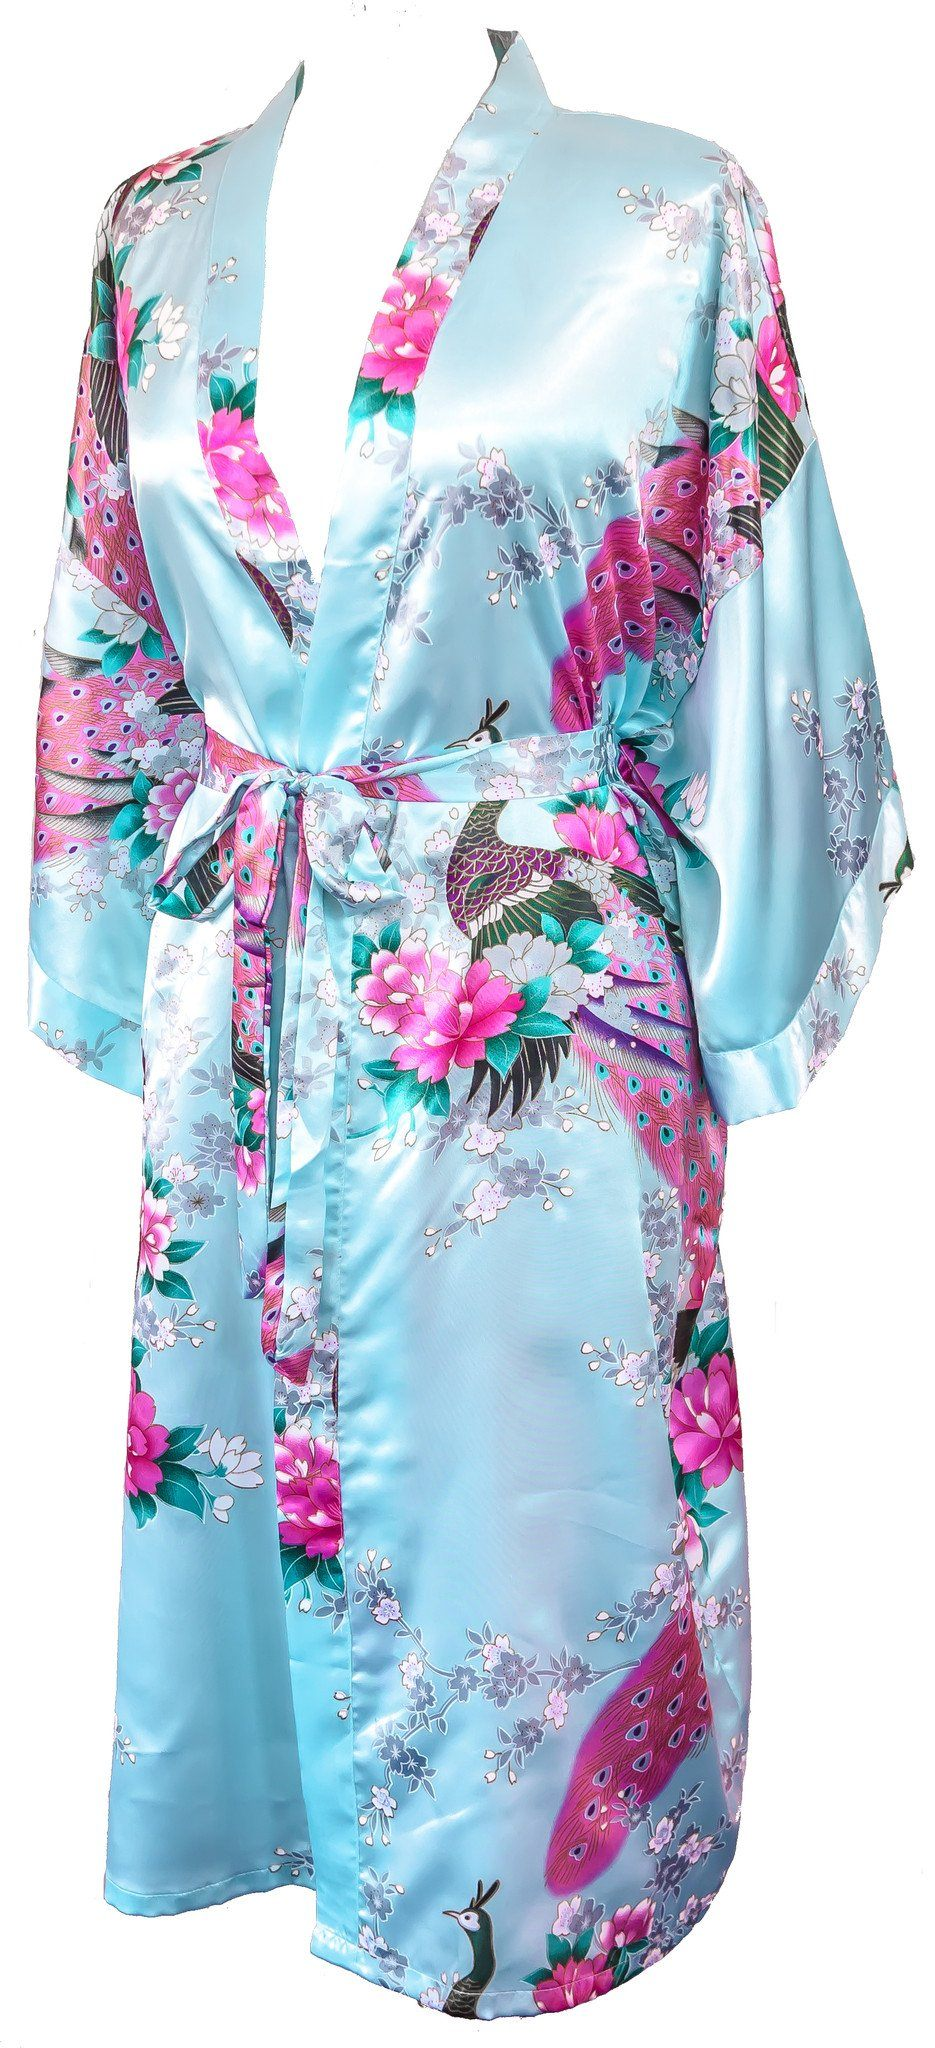 Kimono robe long 16 colors Premium Peacock bridesmaid bridal shower womens gift - CCCollections